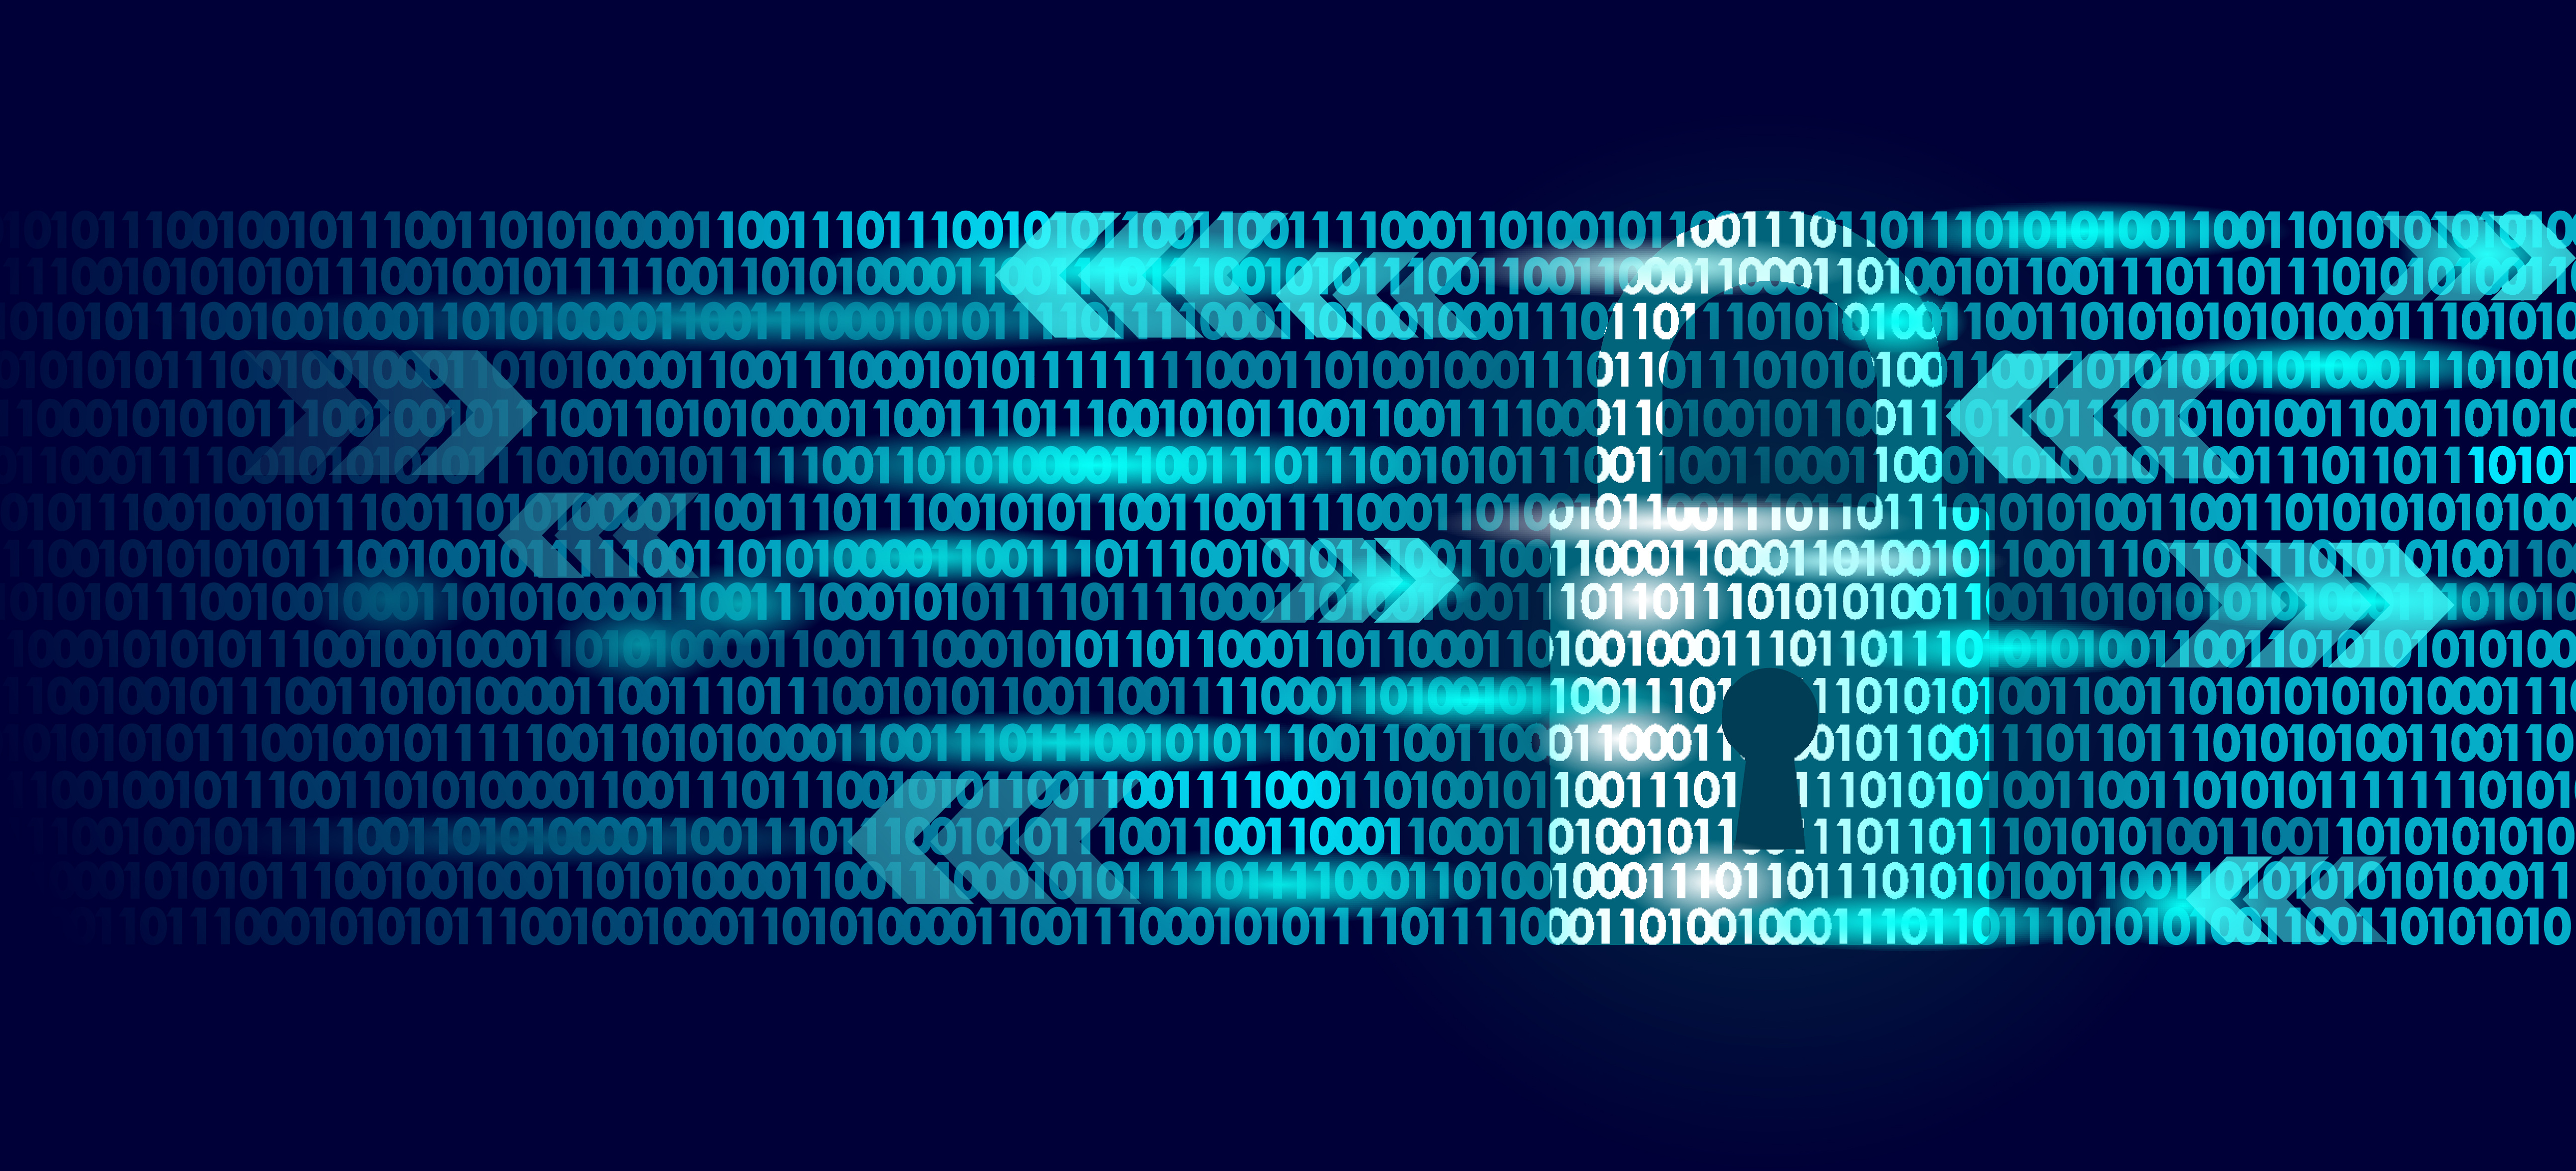 How to Mitigate an Accidental Insider Threat